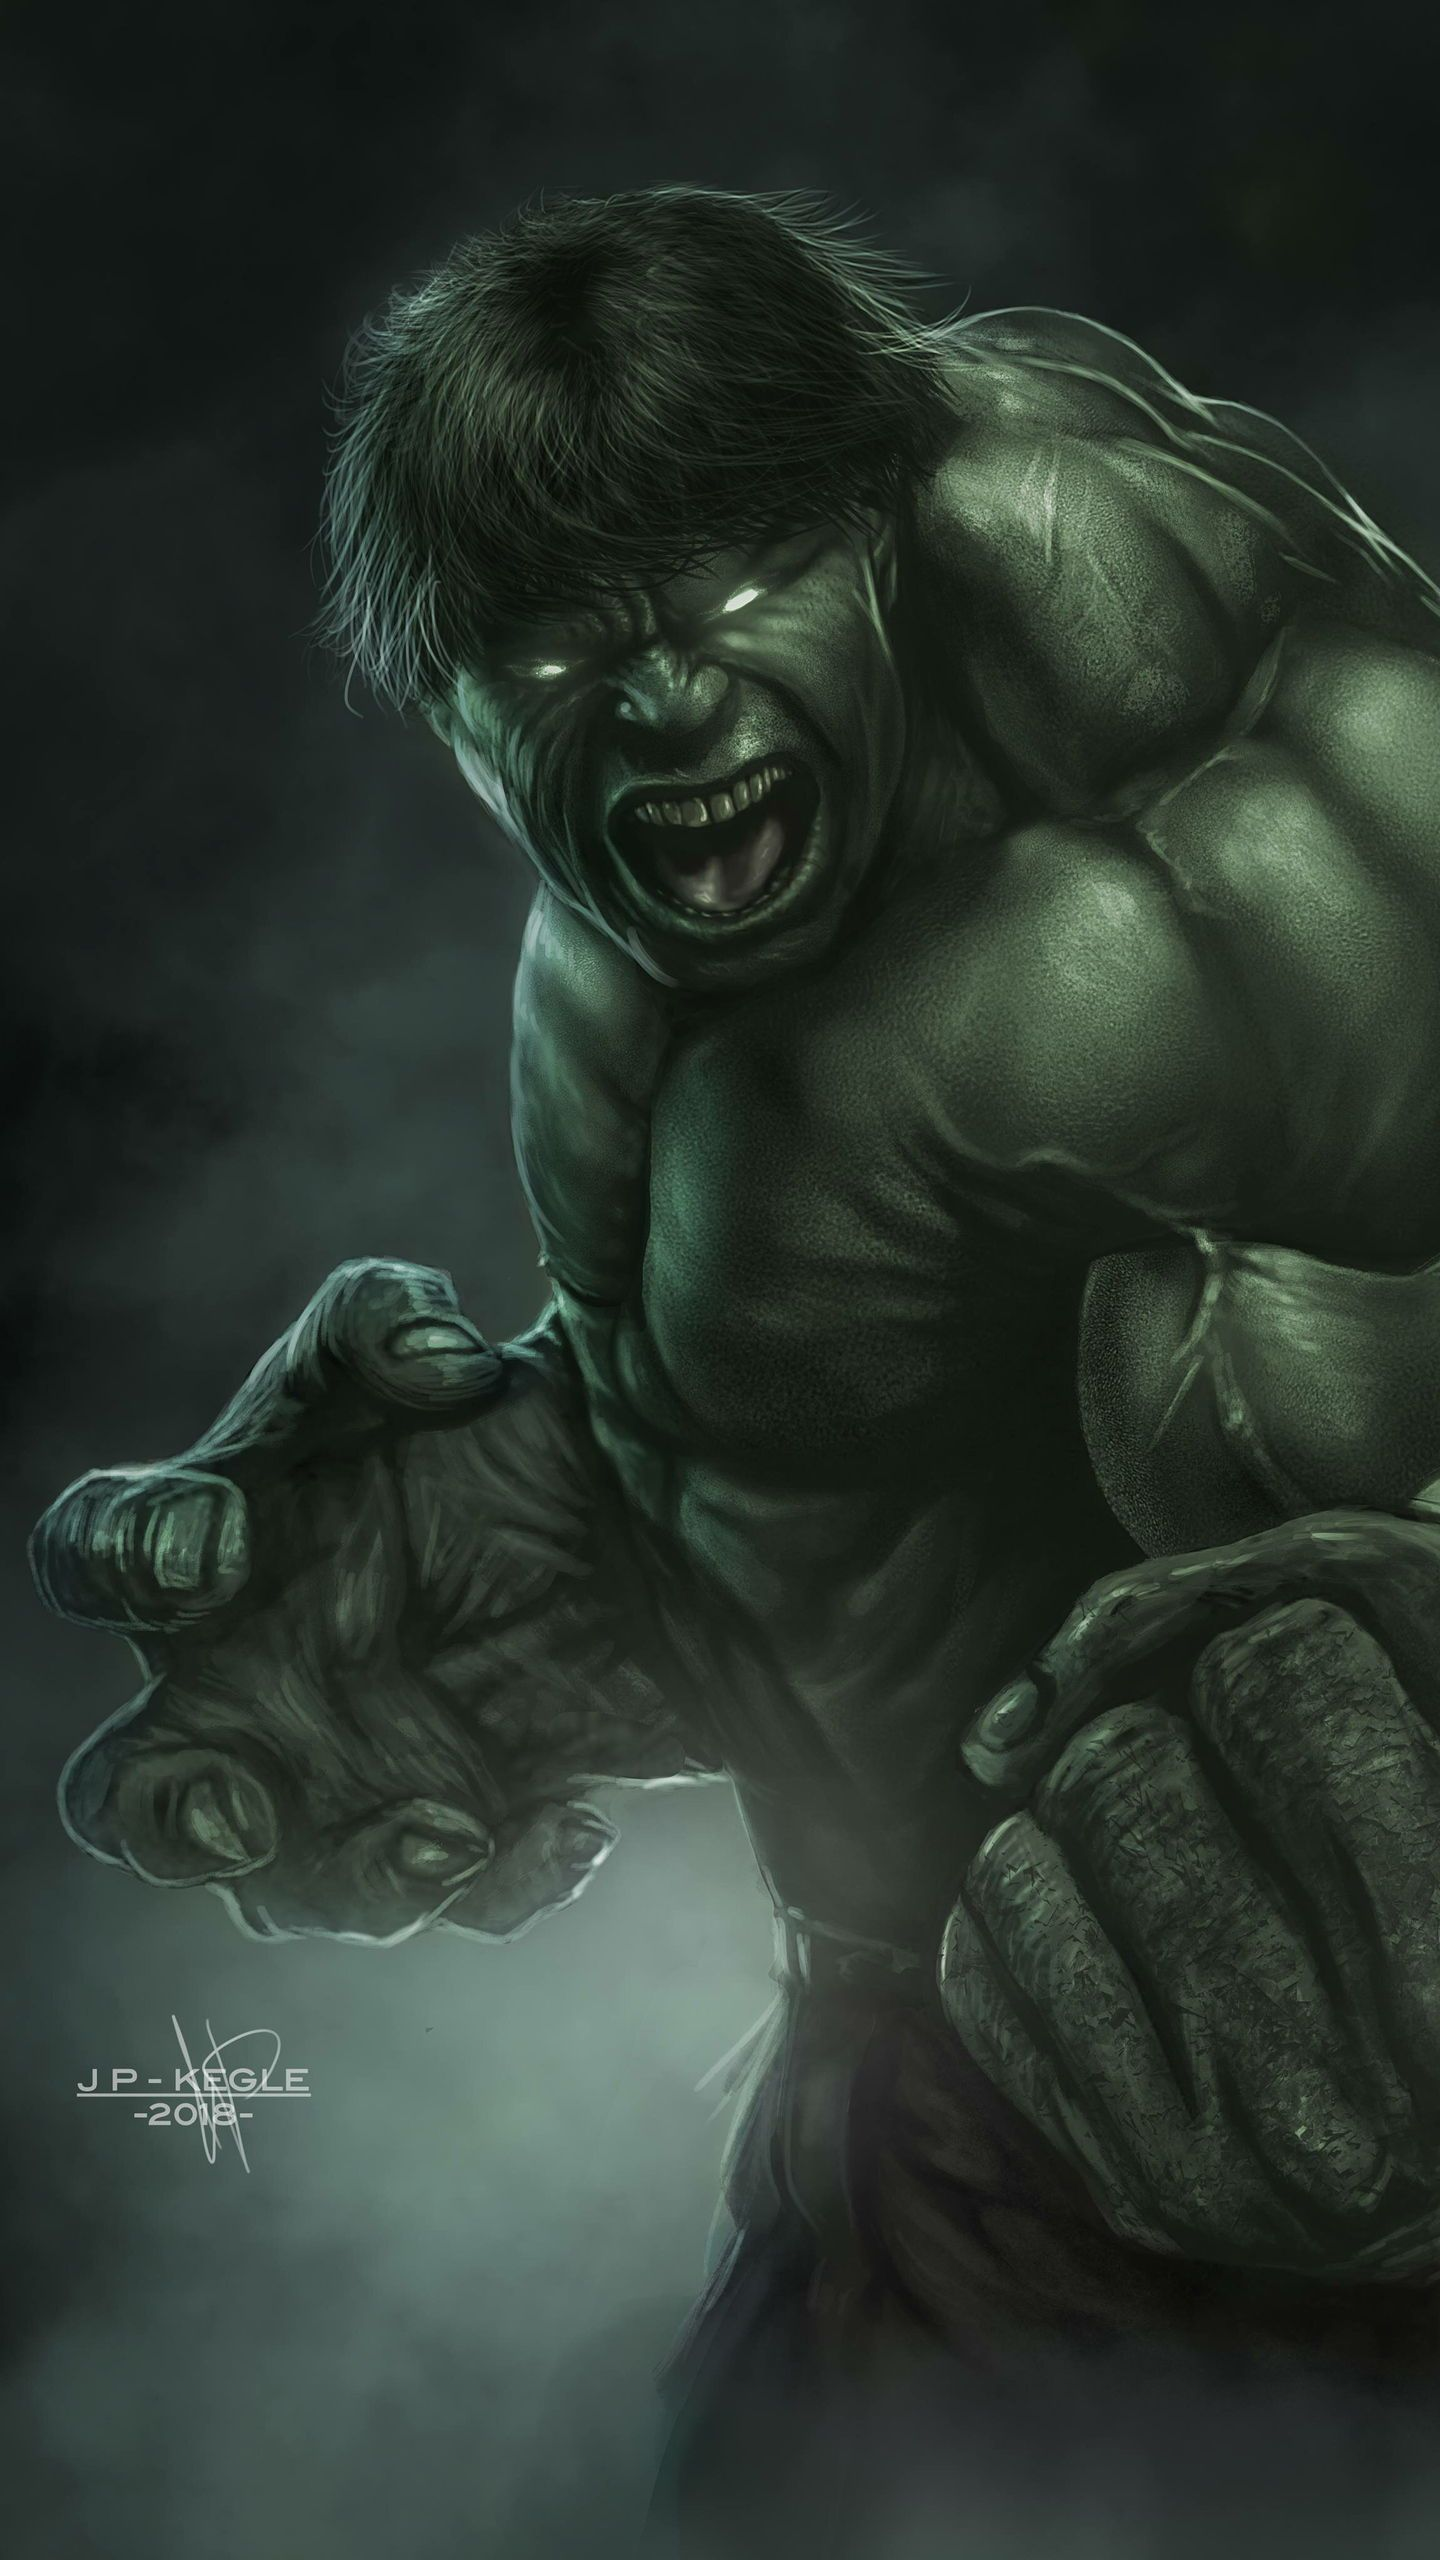 CAN YOU QUALIFY THE INCREDIBLE HULK QUIZ? 10 QUESTIONS